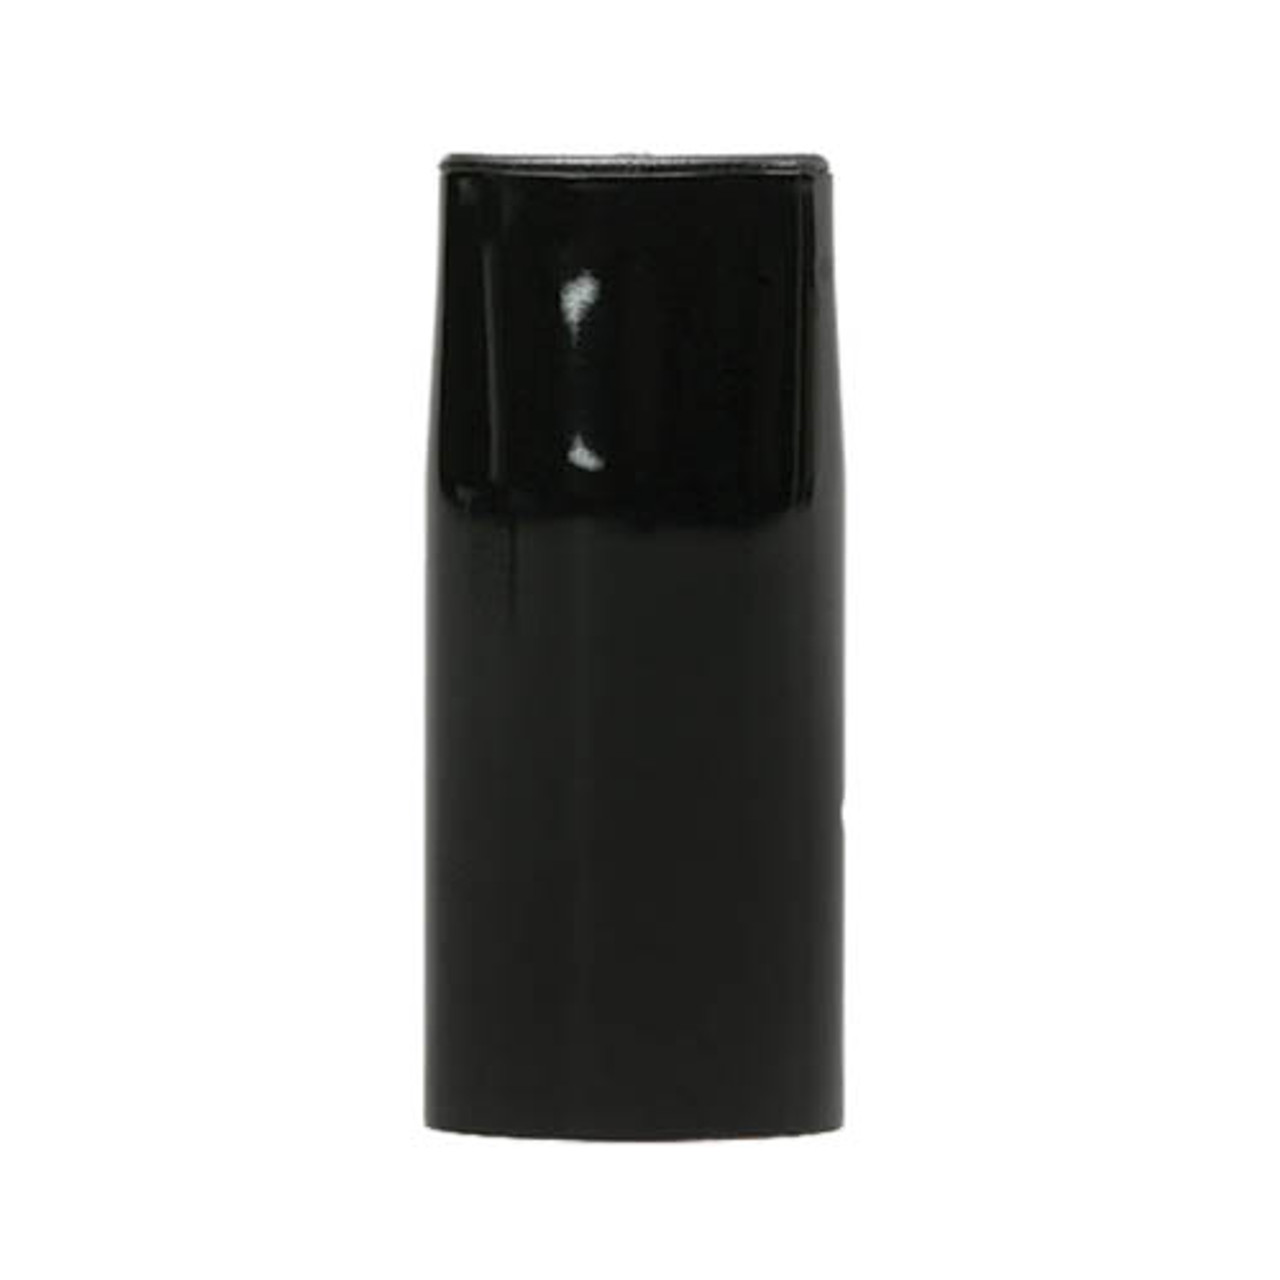 Grenco Micro G Mouthpiece